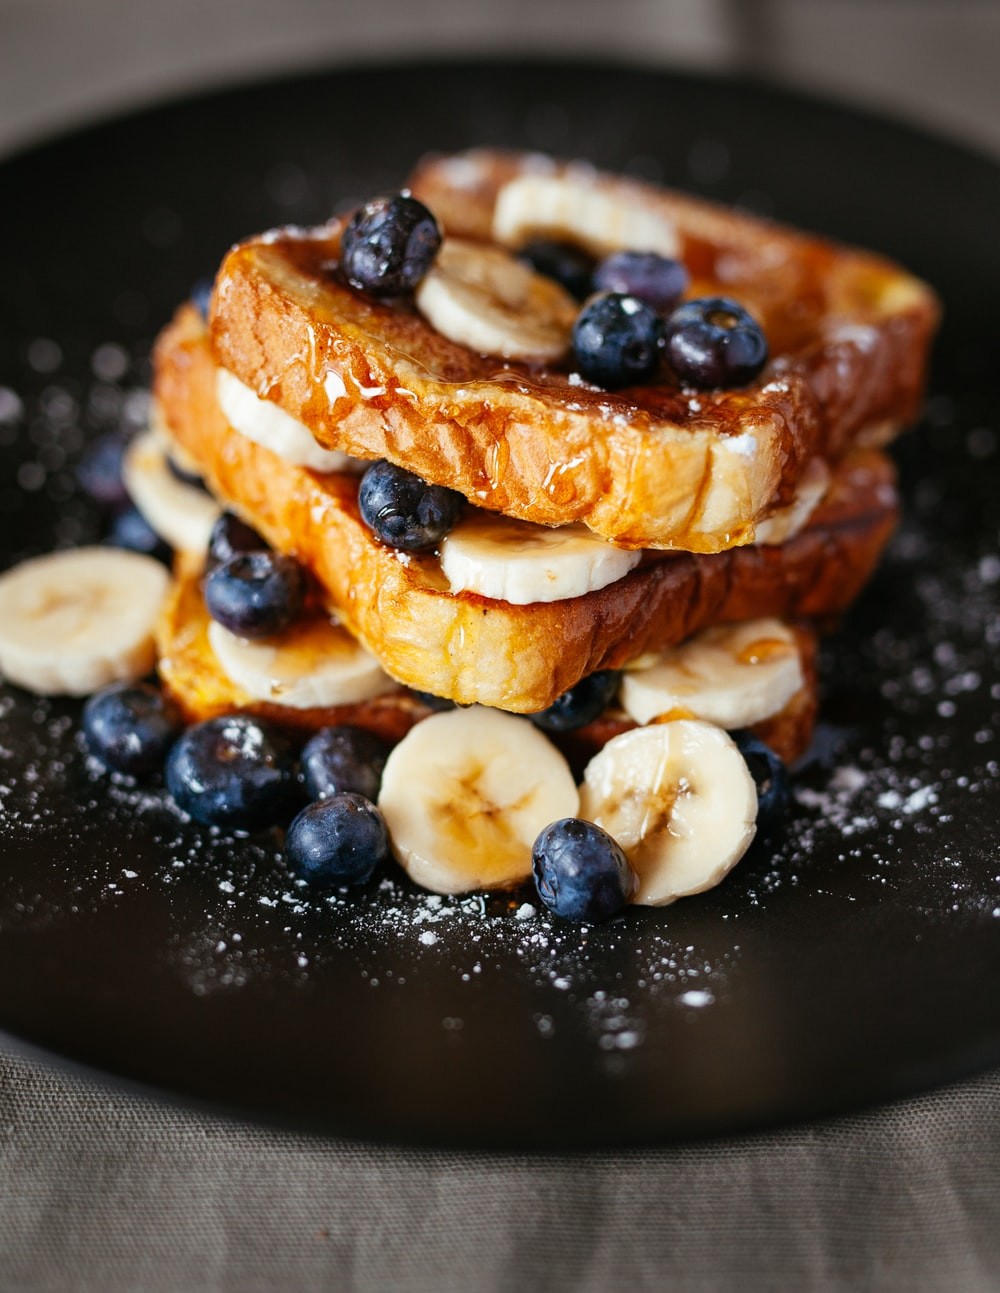 toast bread with blueberry on black plate